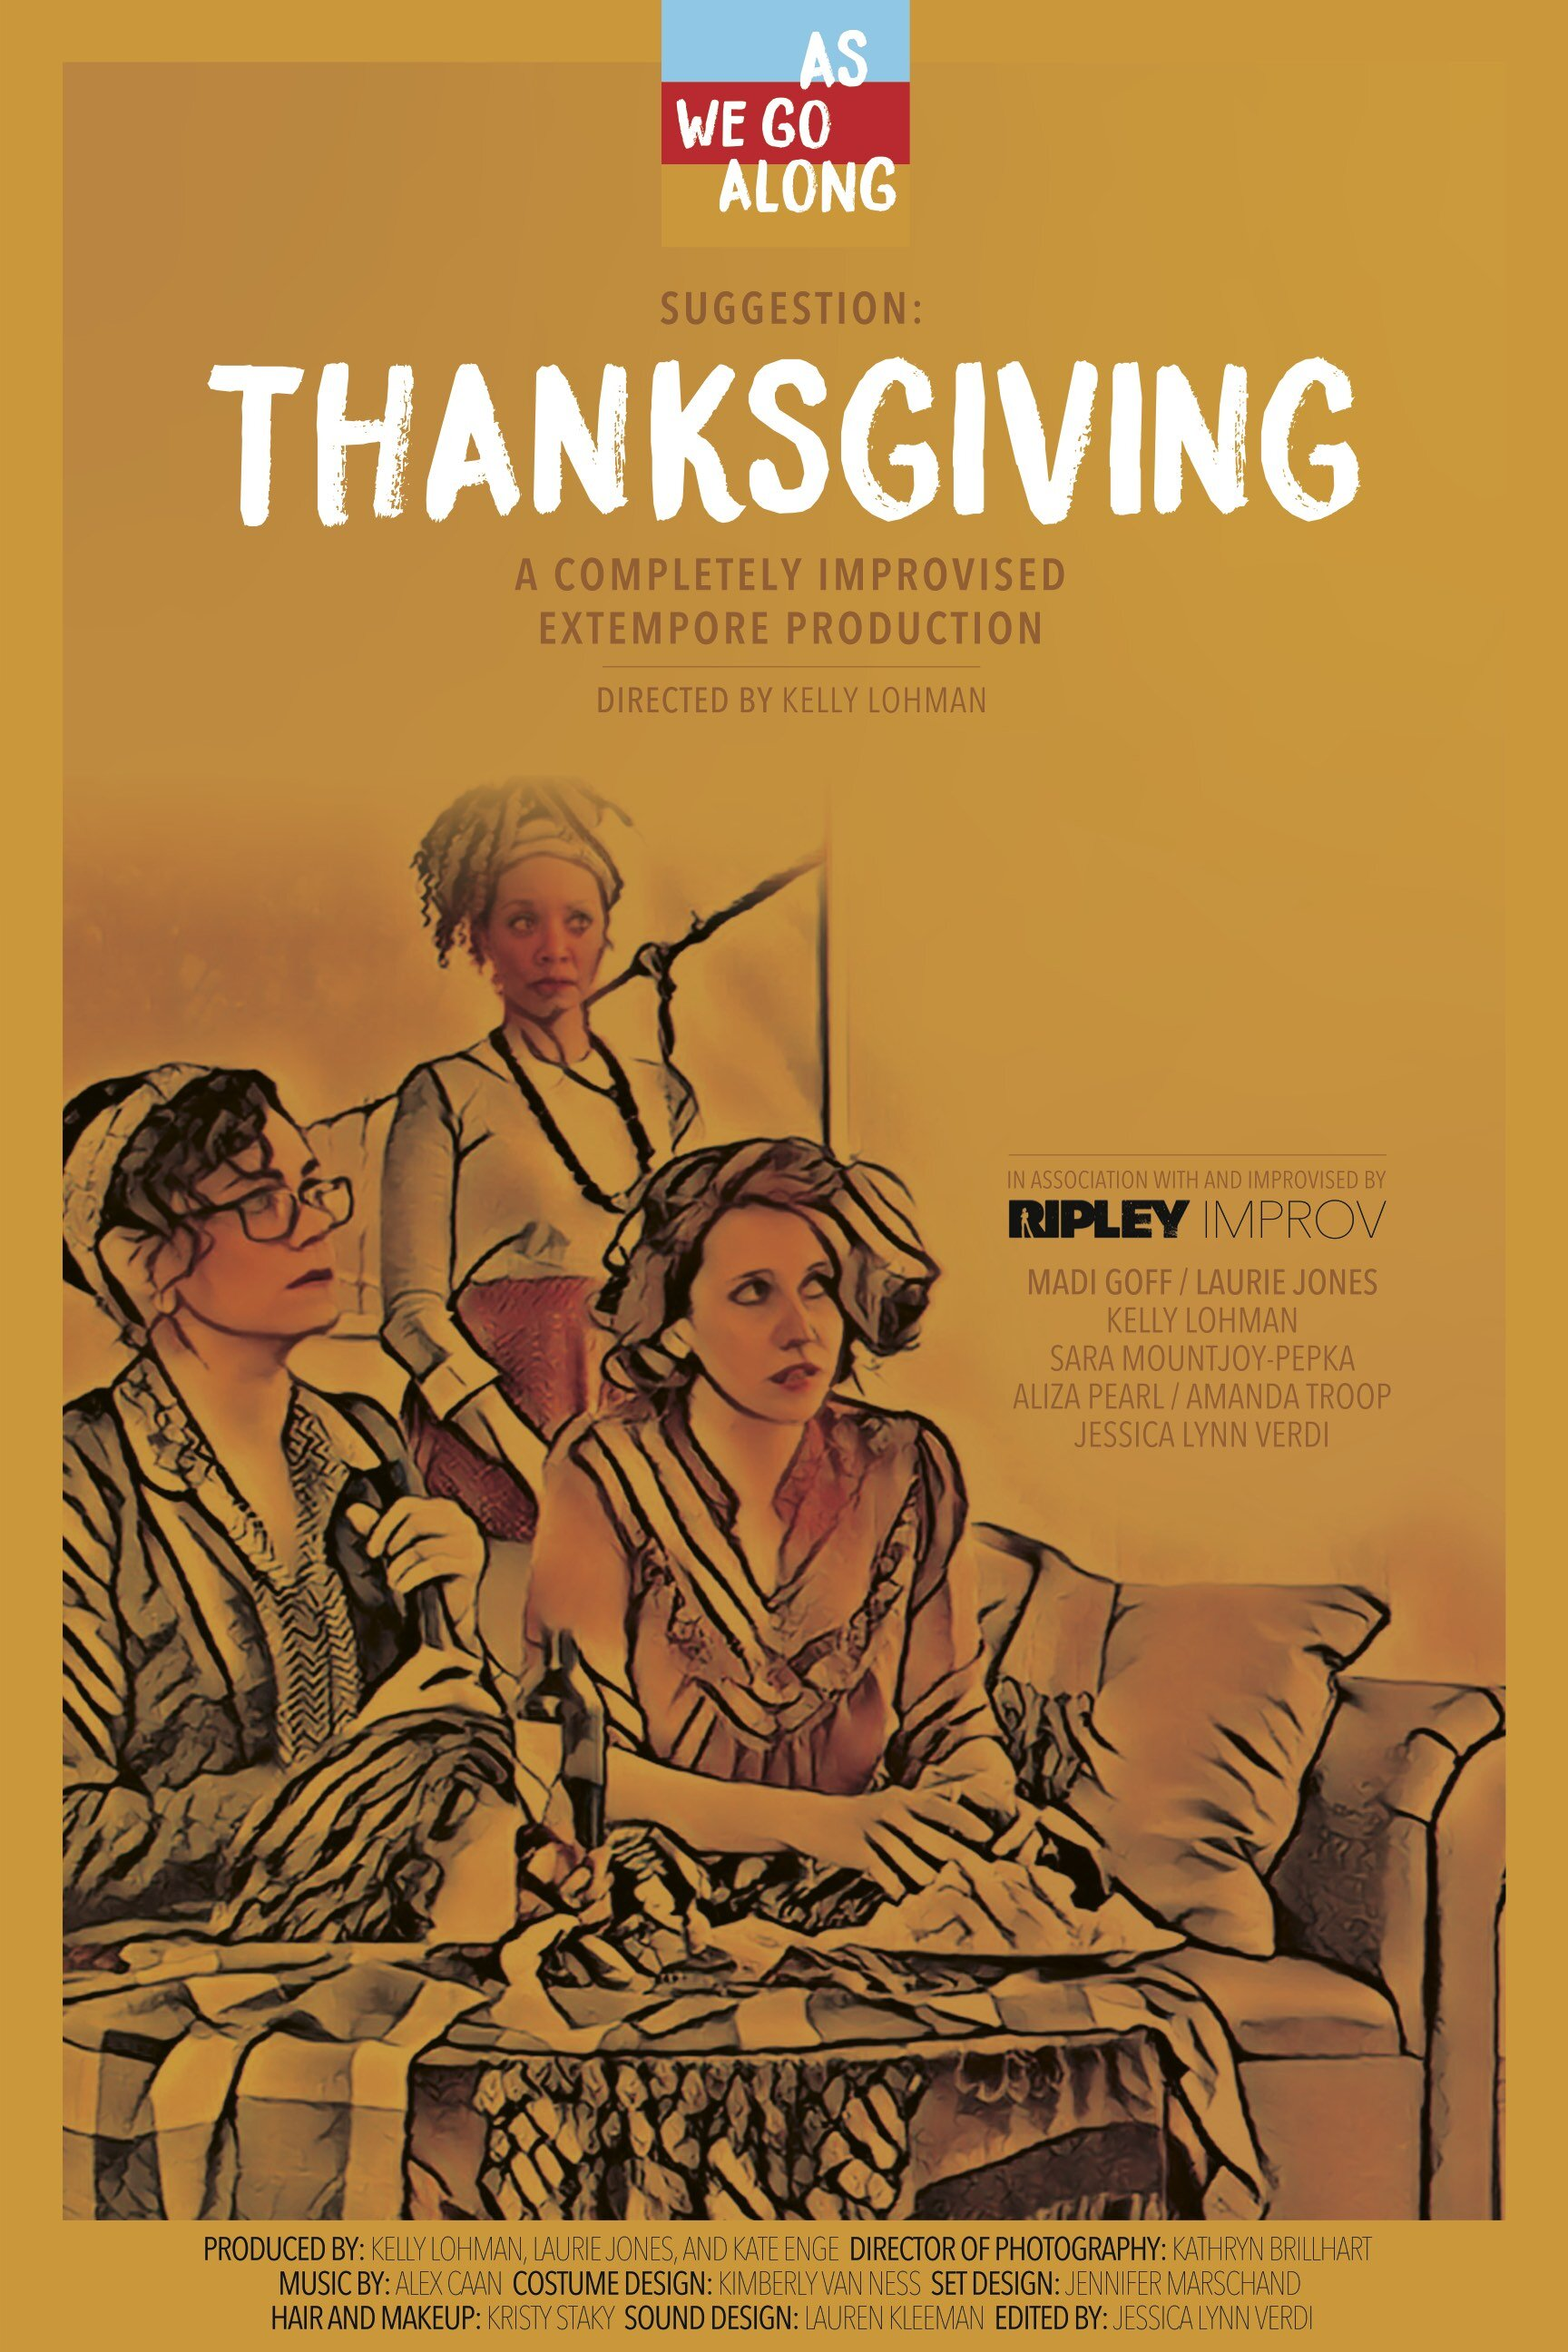 Thanksgiving: Over the course of an orphan's Thanksgiving dinner, a group of small-town California community theater artists play out their inner turmoil over a chicken and lots of wine. As niceties unfurl into savage jabs, fierce competitiveness threatens to ruin this found family's holiday.